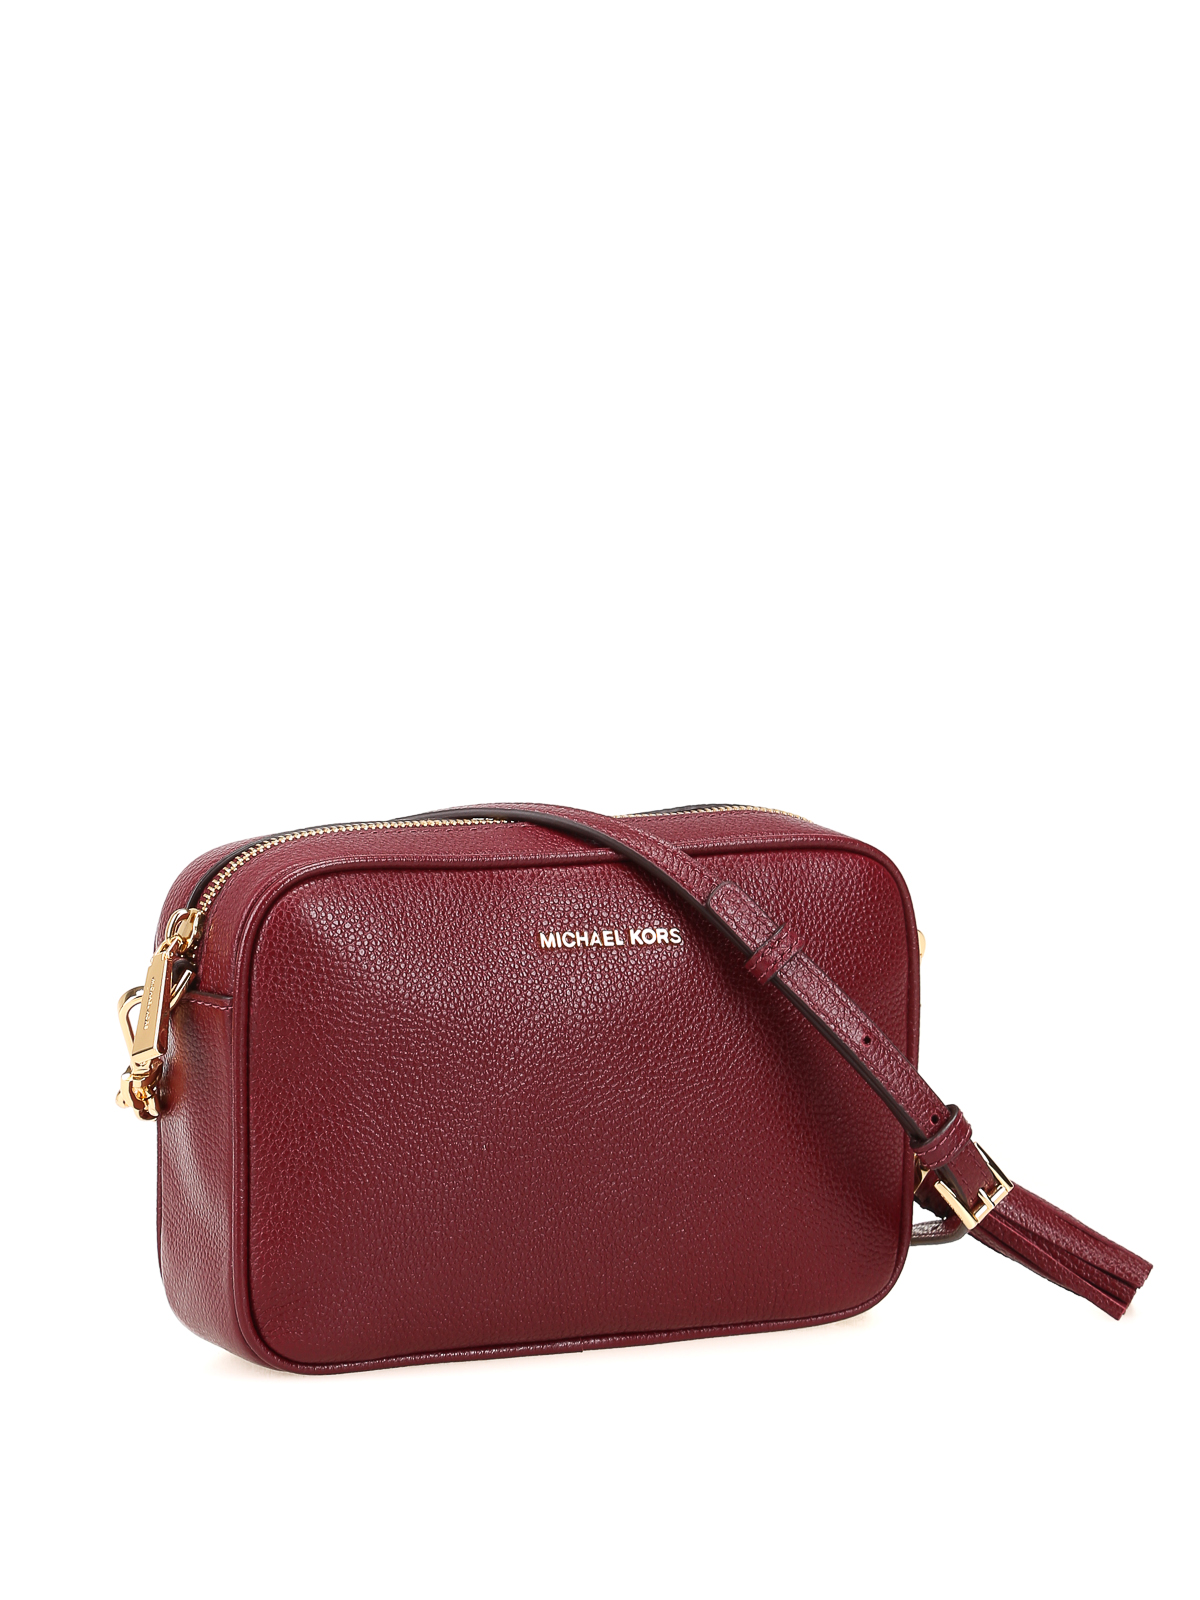 04b48015af7f21 MICHAEL KORS: cross body bags online - Ginny medium oxblood cross body bag